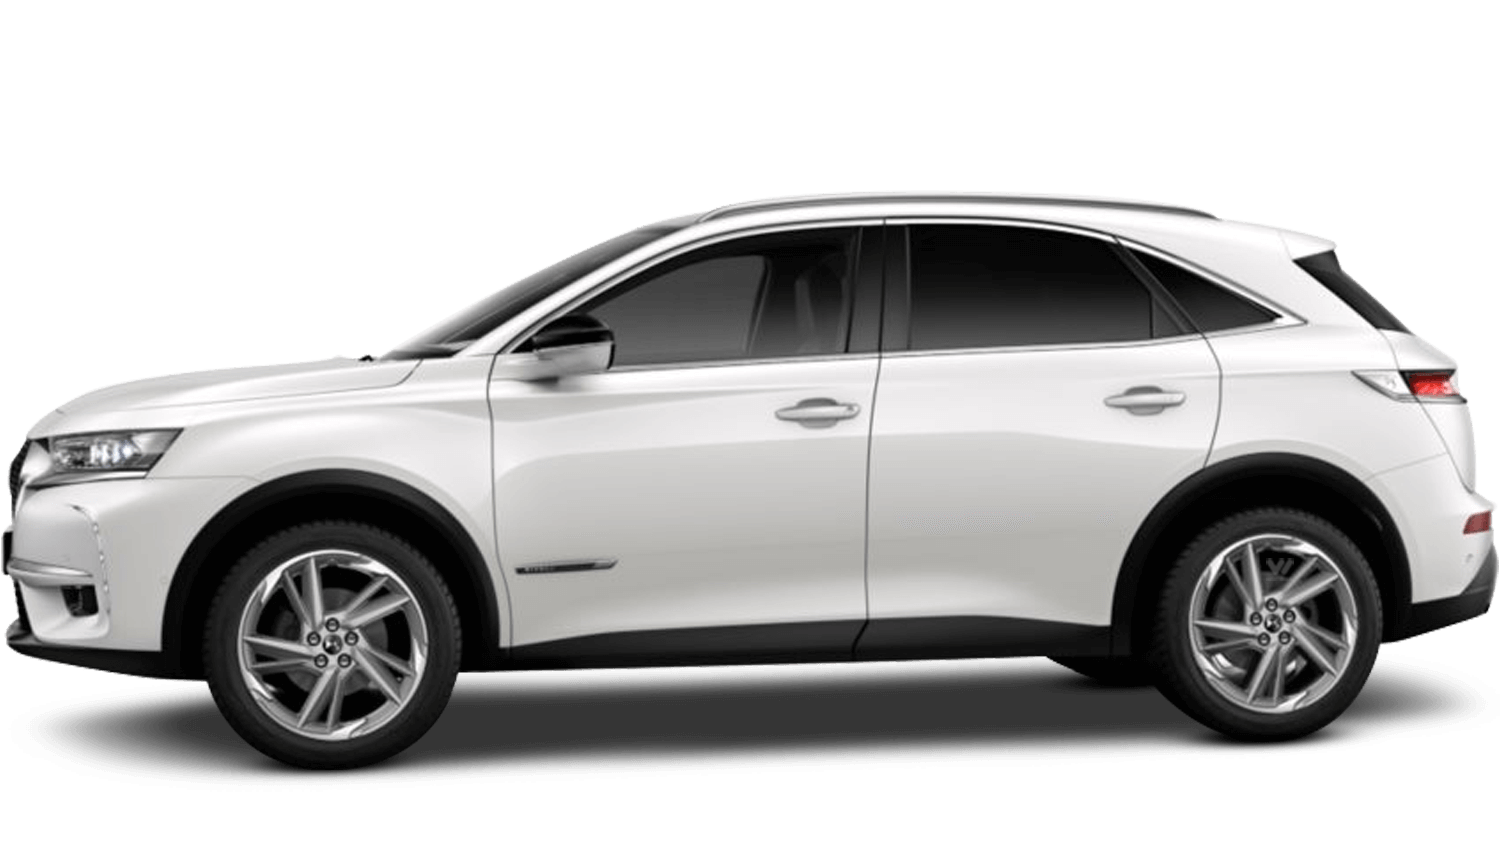 Pearl White (Pearl) DS DS 7 Crossback